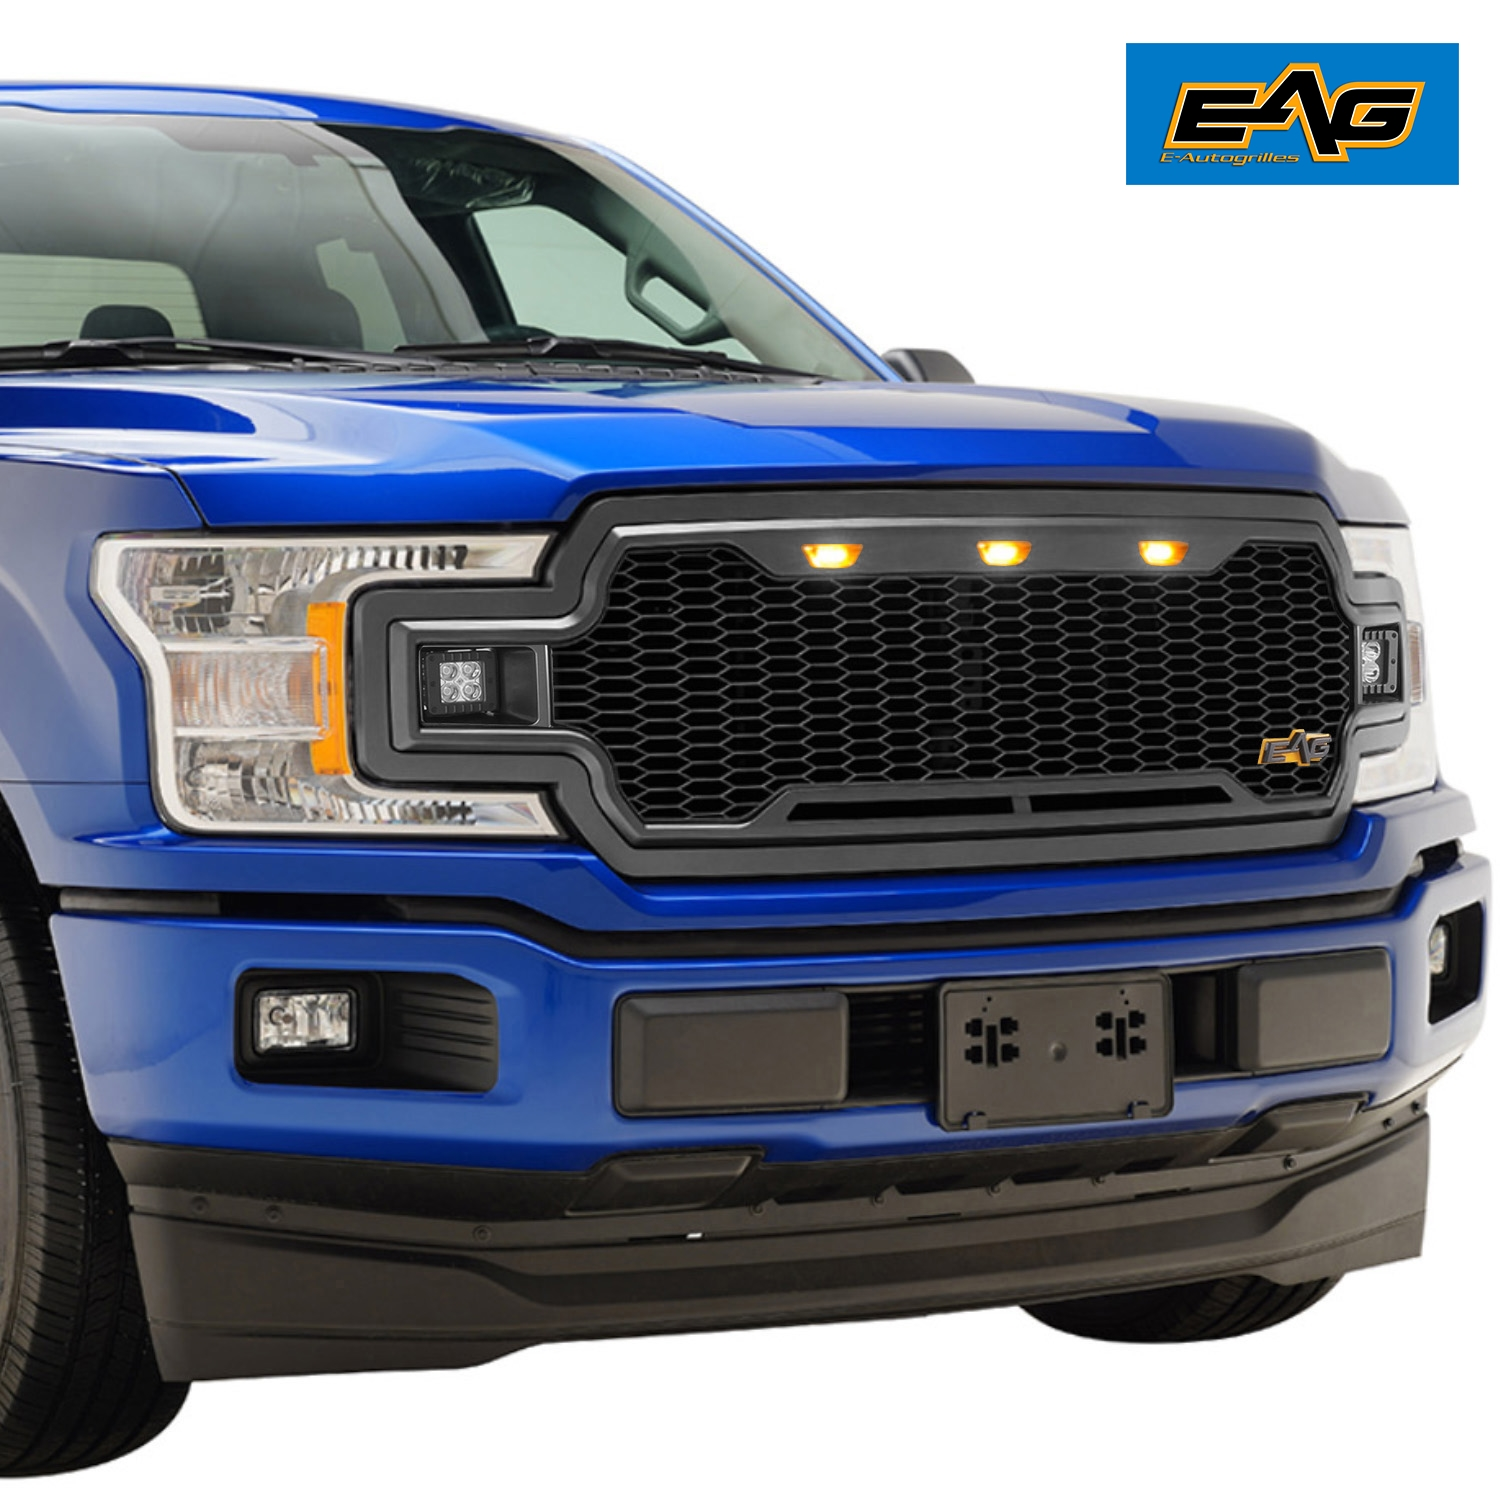 Details About Eag Mesh Mesh Main Grille Upper Front Grill Fit For1 8 19 Ford F150